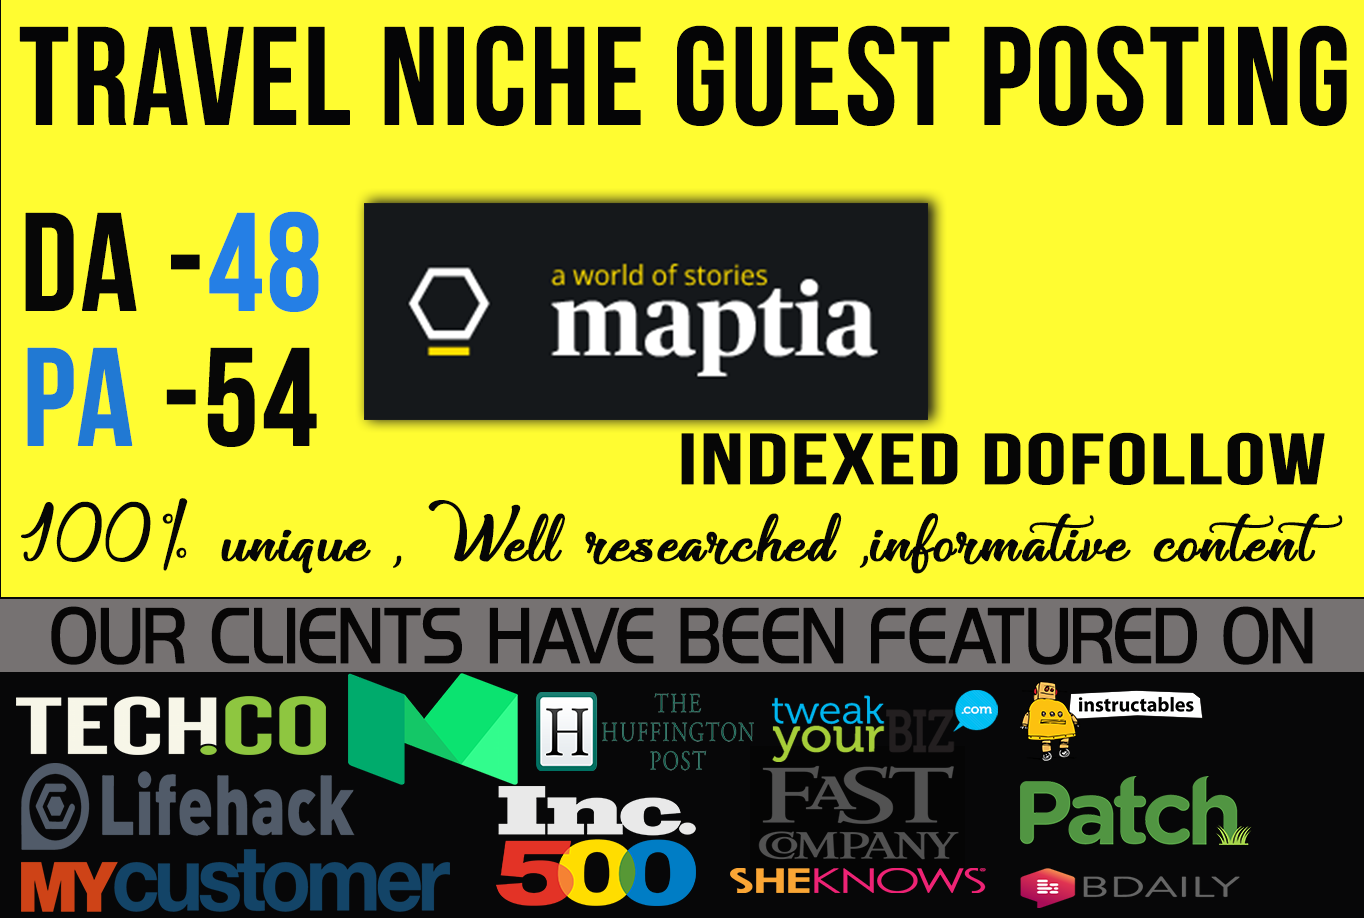 write & guest post from high authority travel sites Mapta com DA55 with dofollow backlink